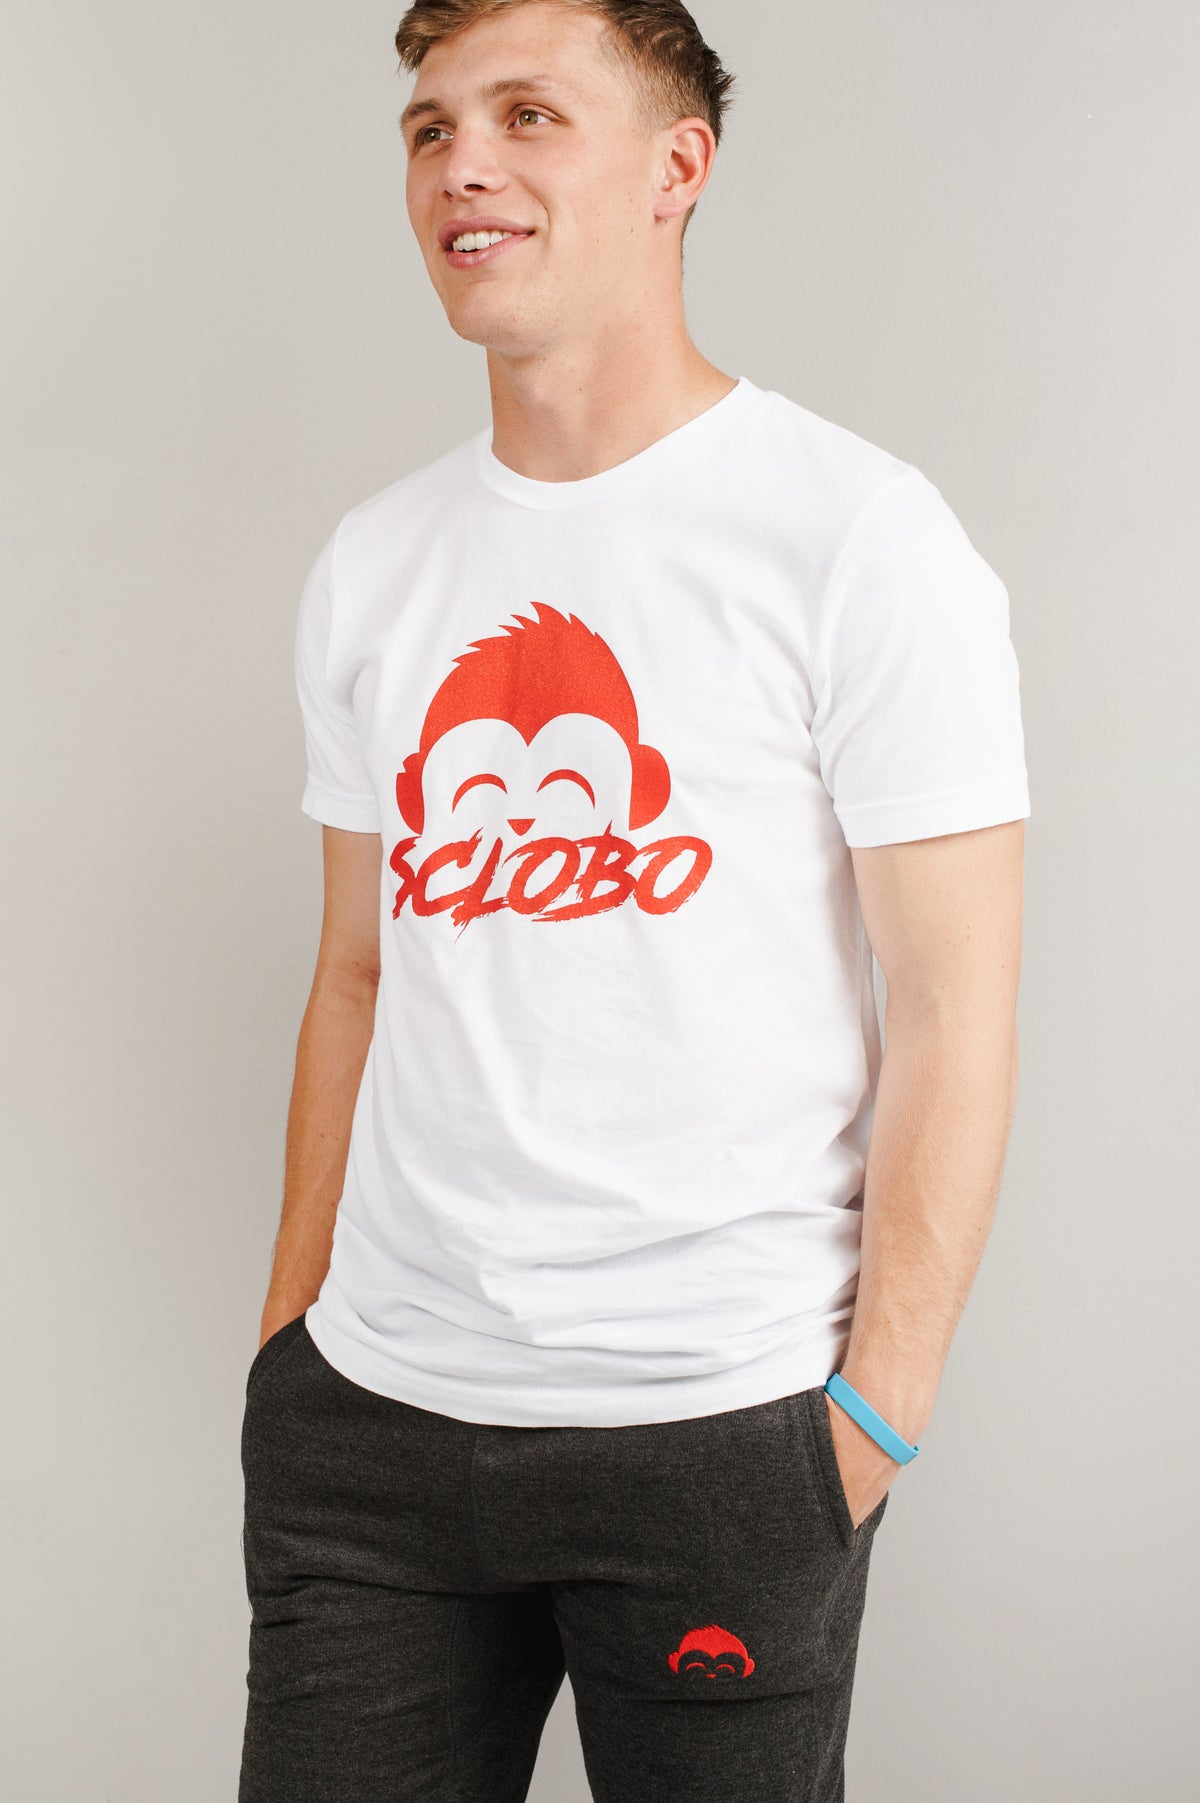 Level 1 SclObo Tee